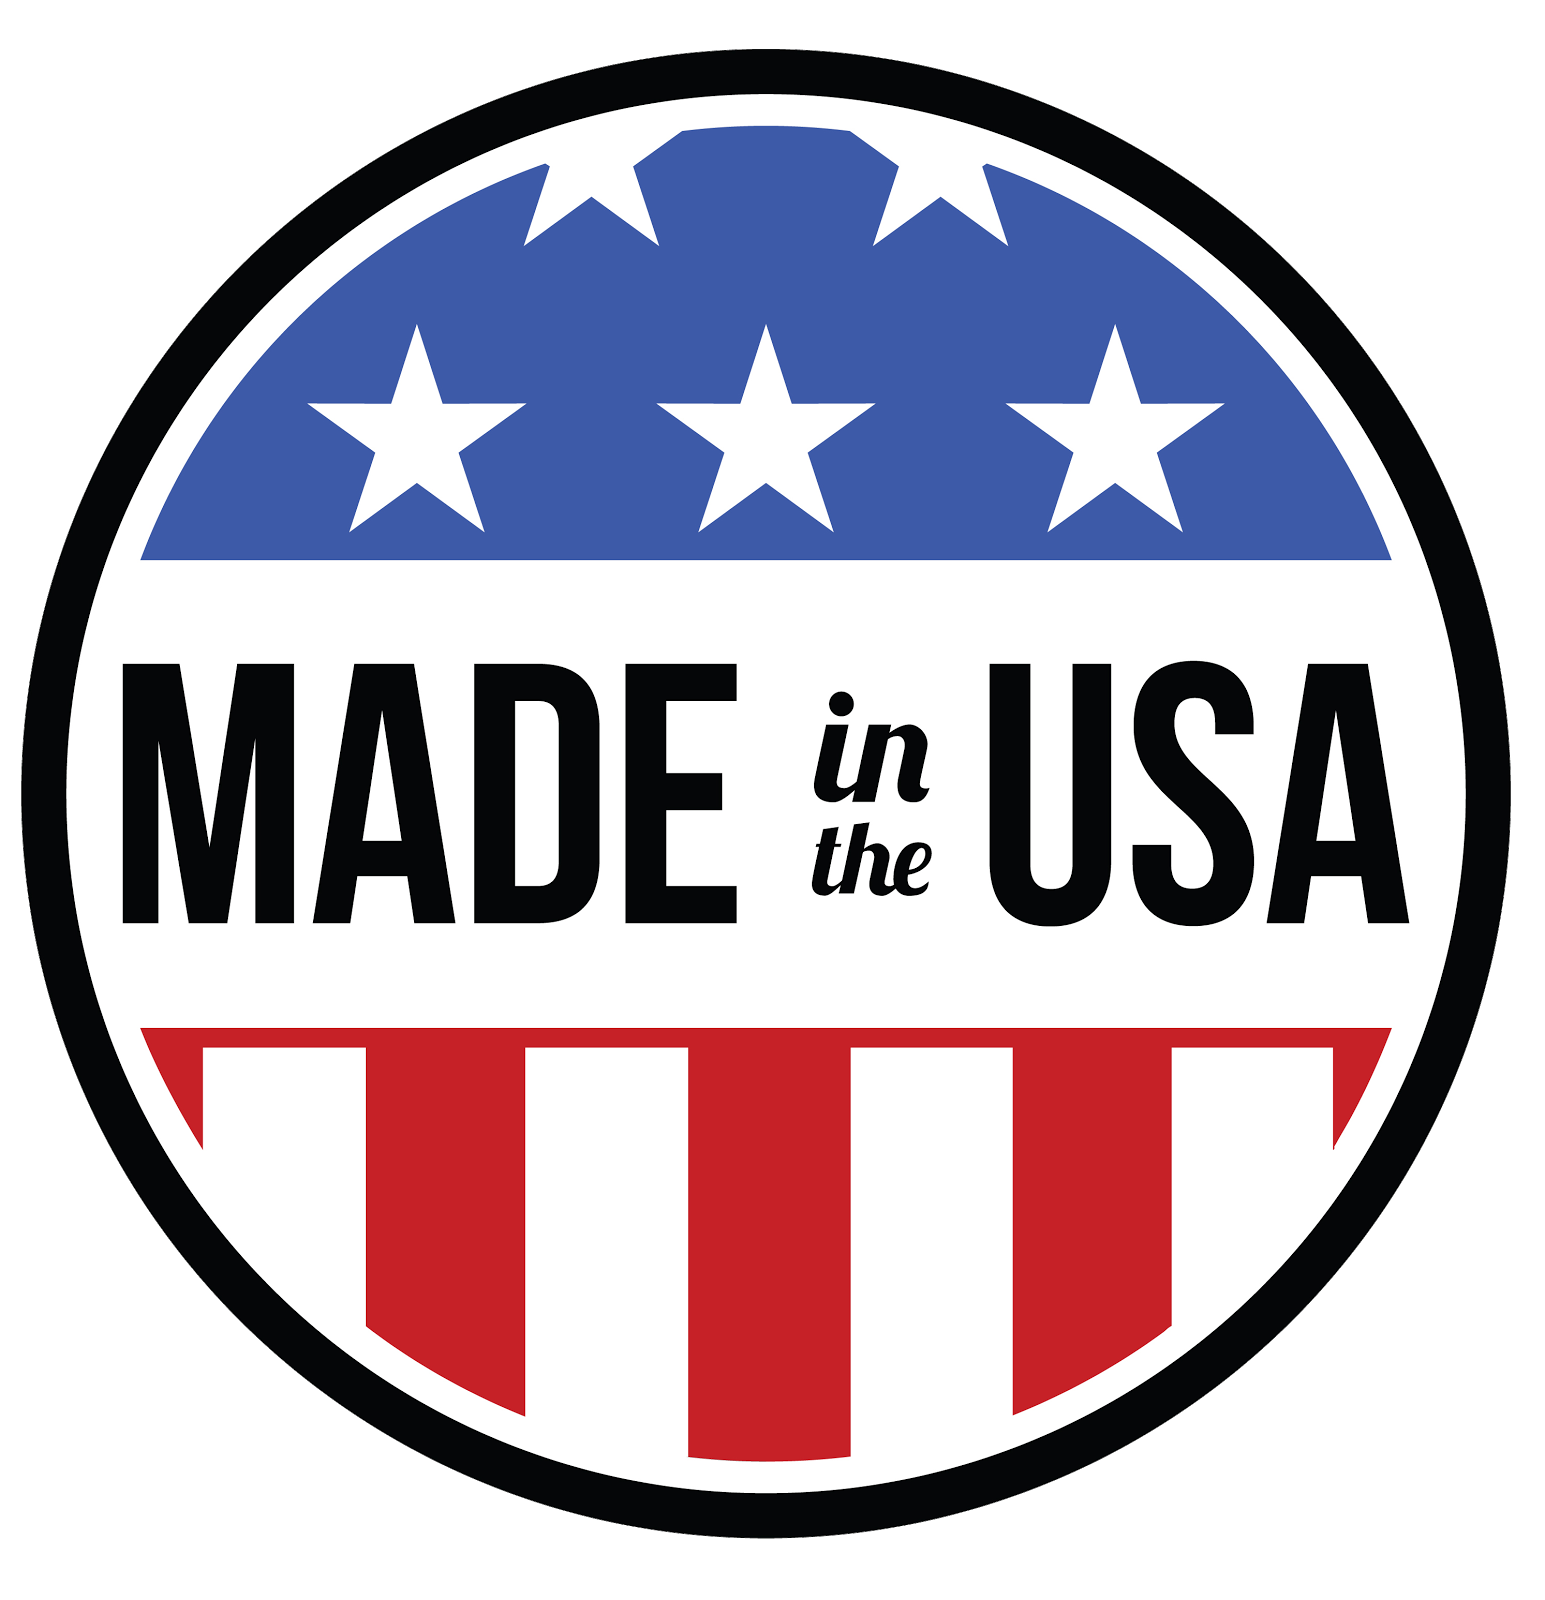 SnS is Made in the United States